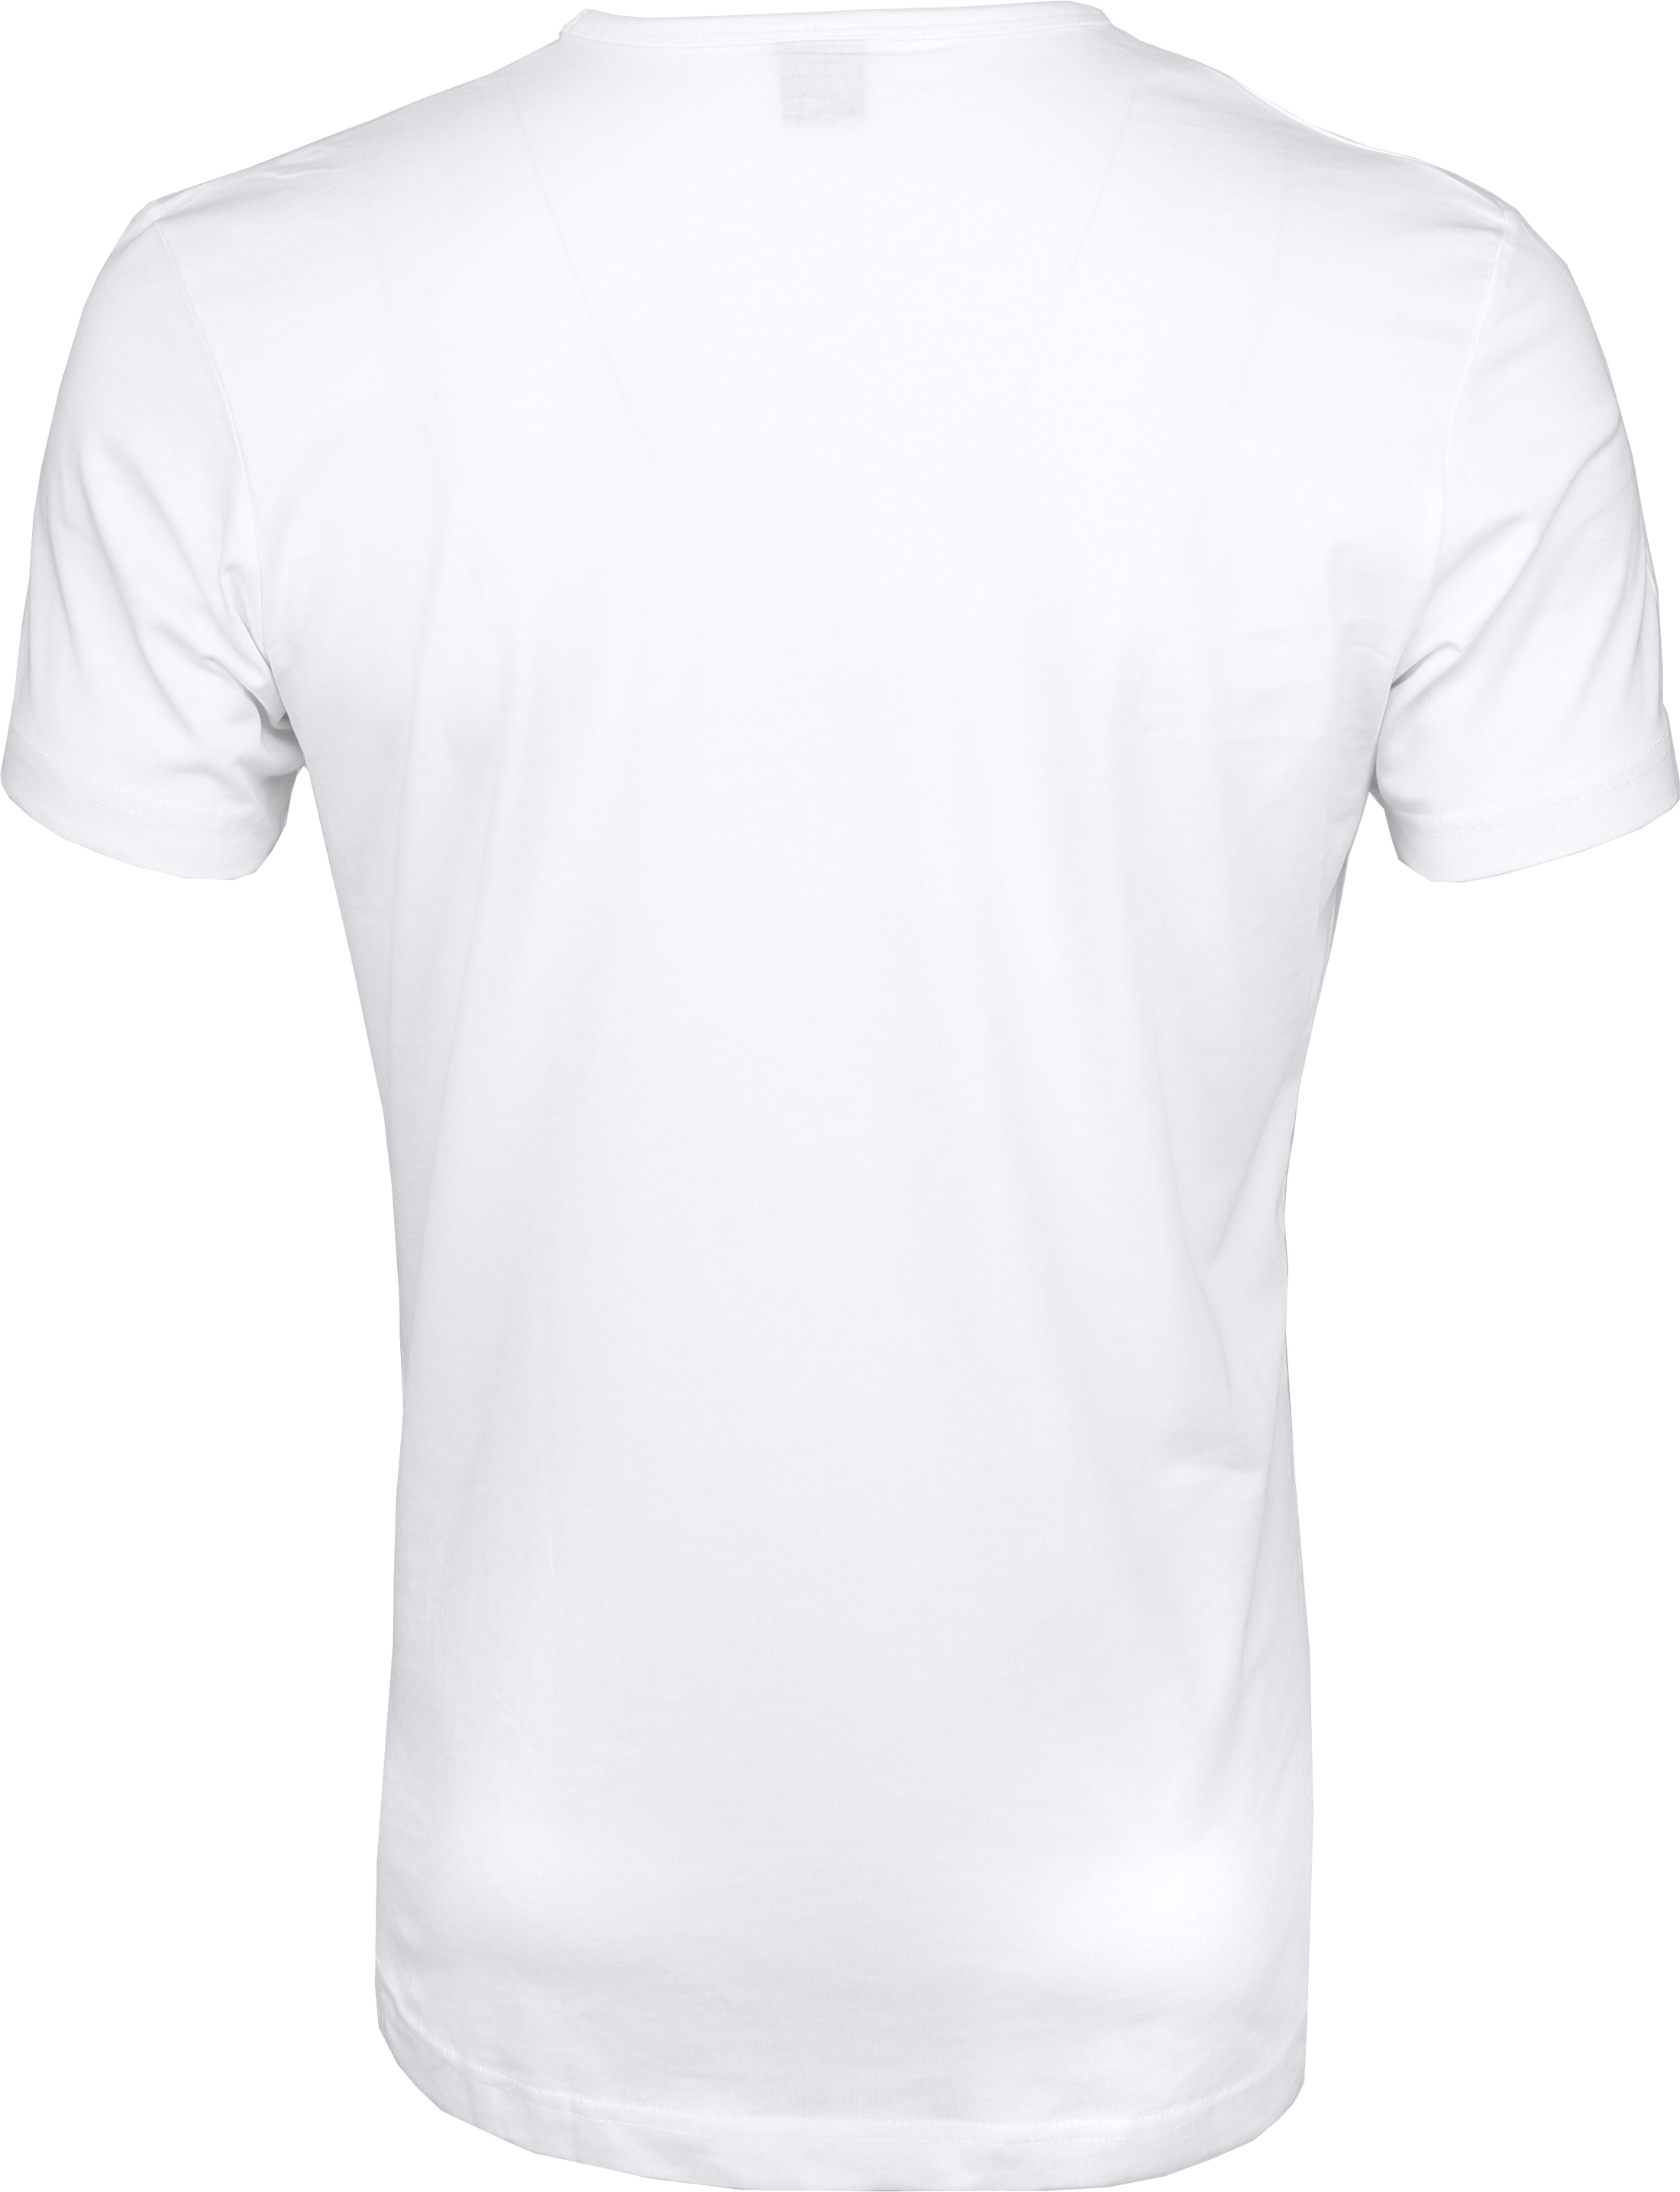 Suitable T-shirt 4-Pack O-Neck Wit Zwart foto 2